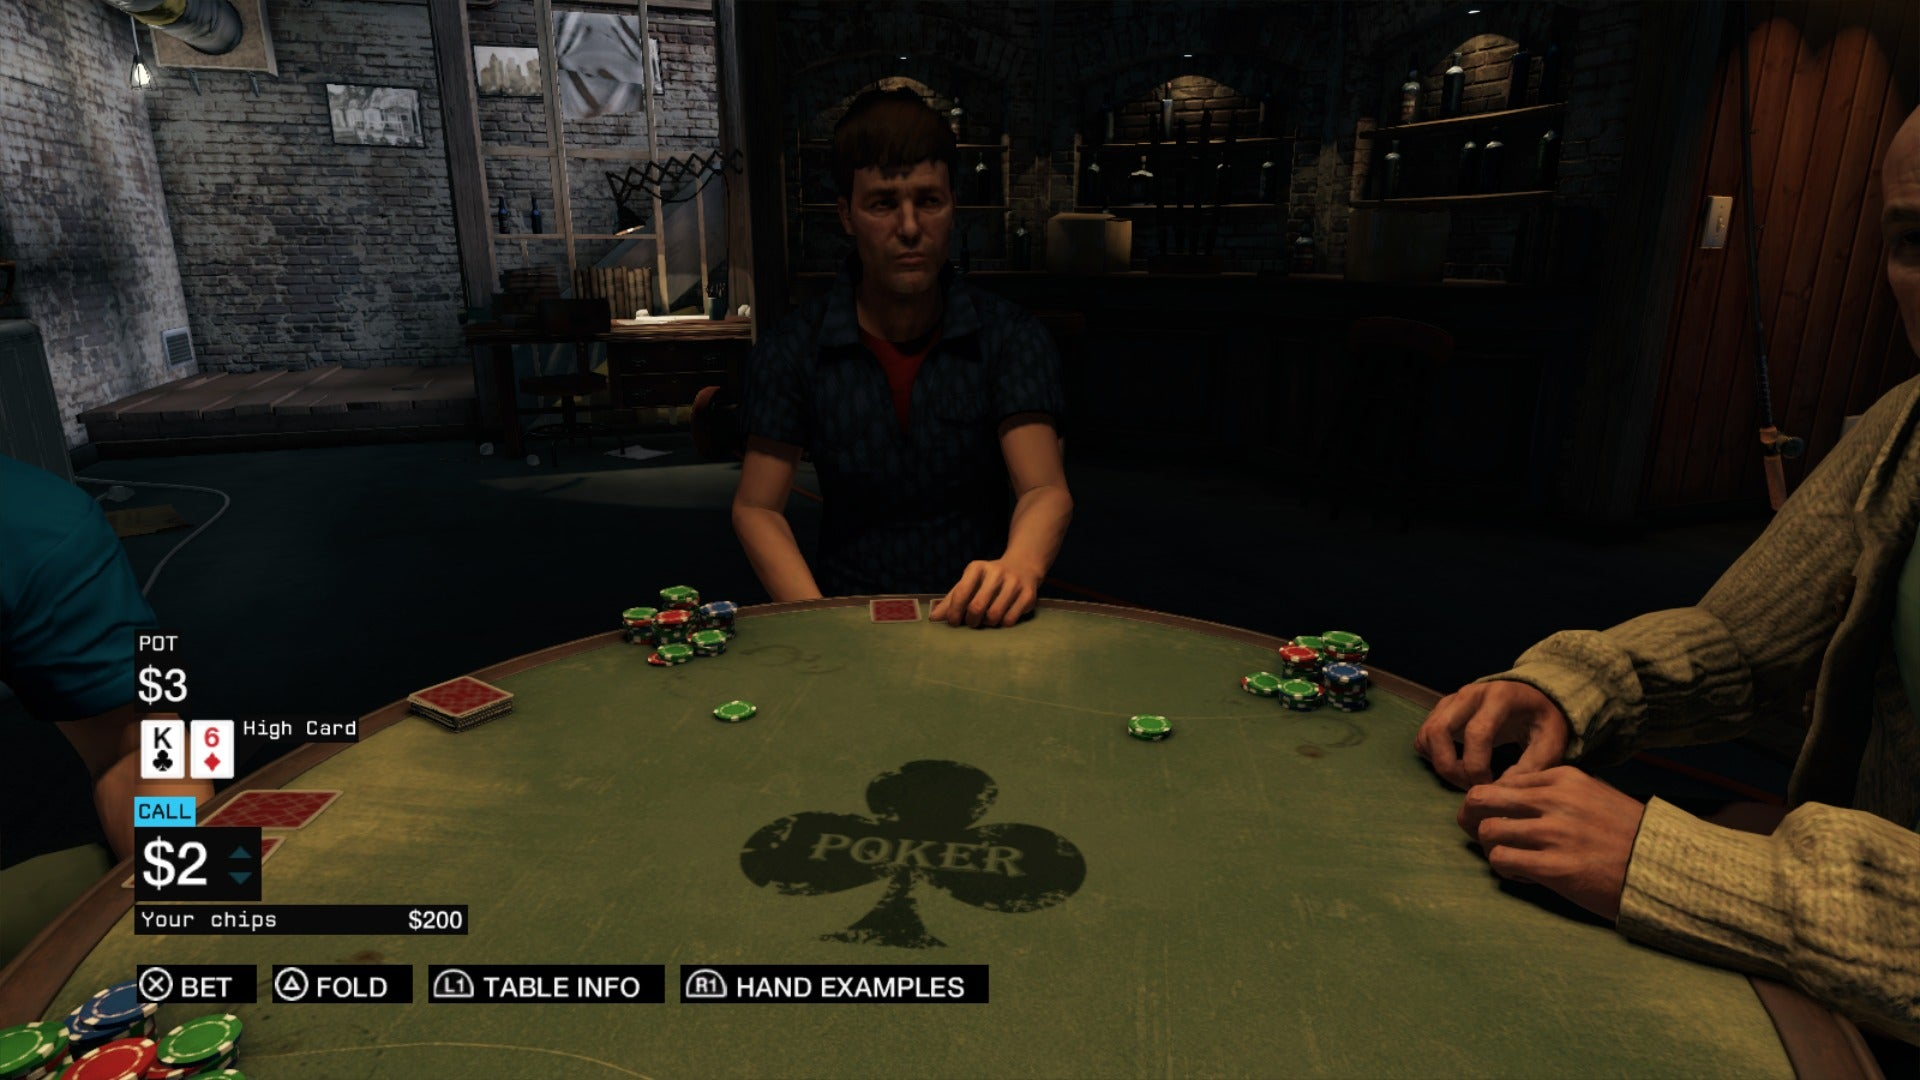 Watch dogs how to win poker monte carlo online casino promo code